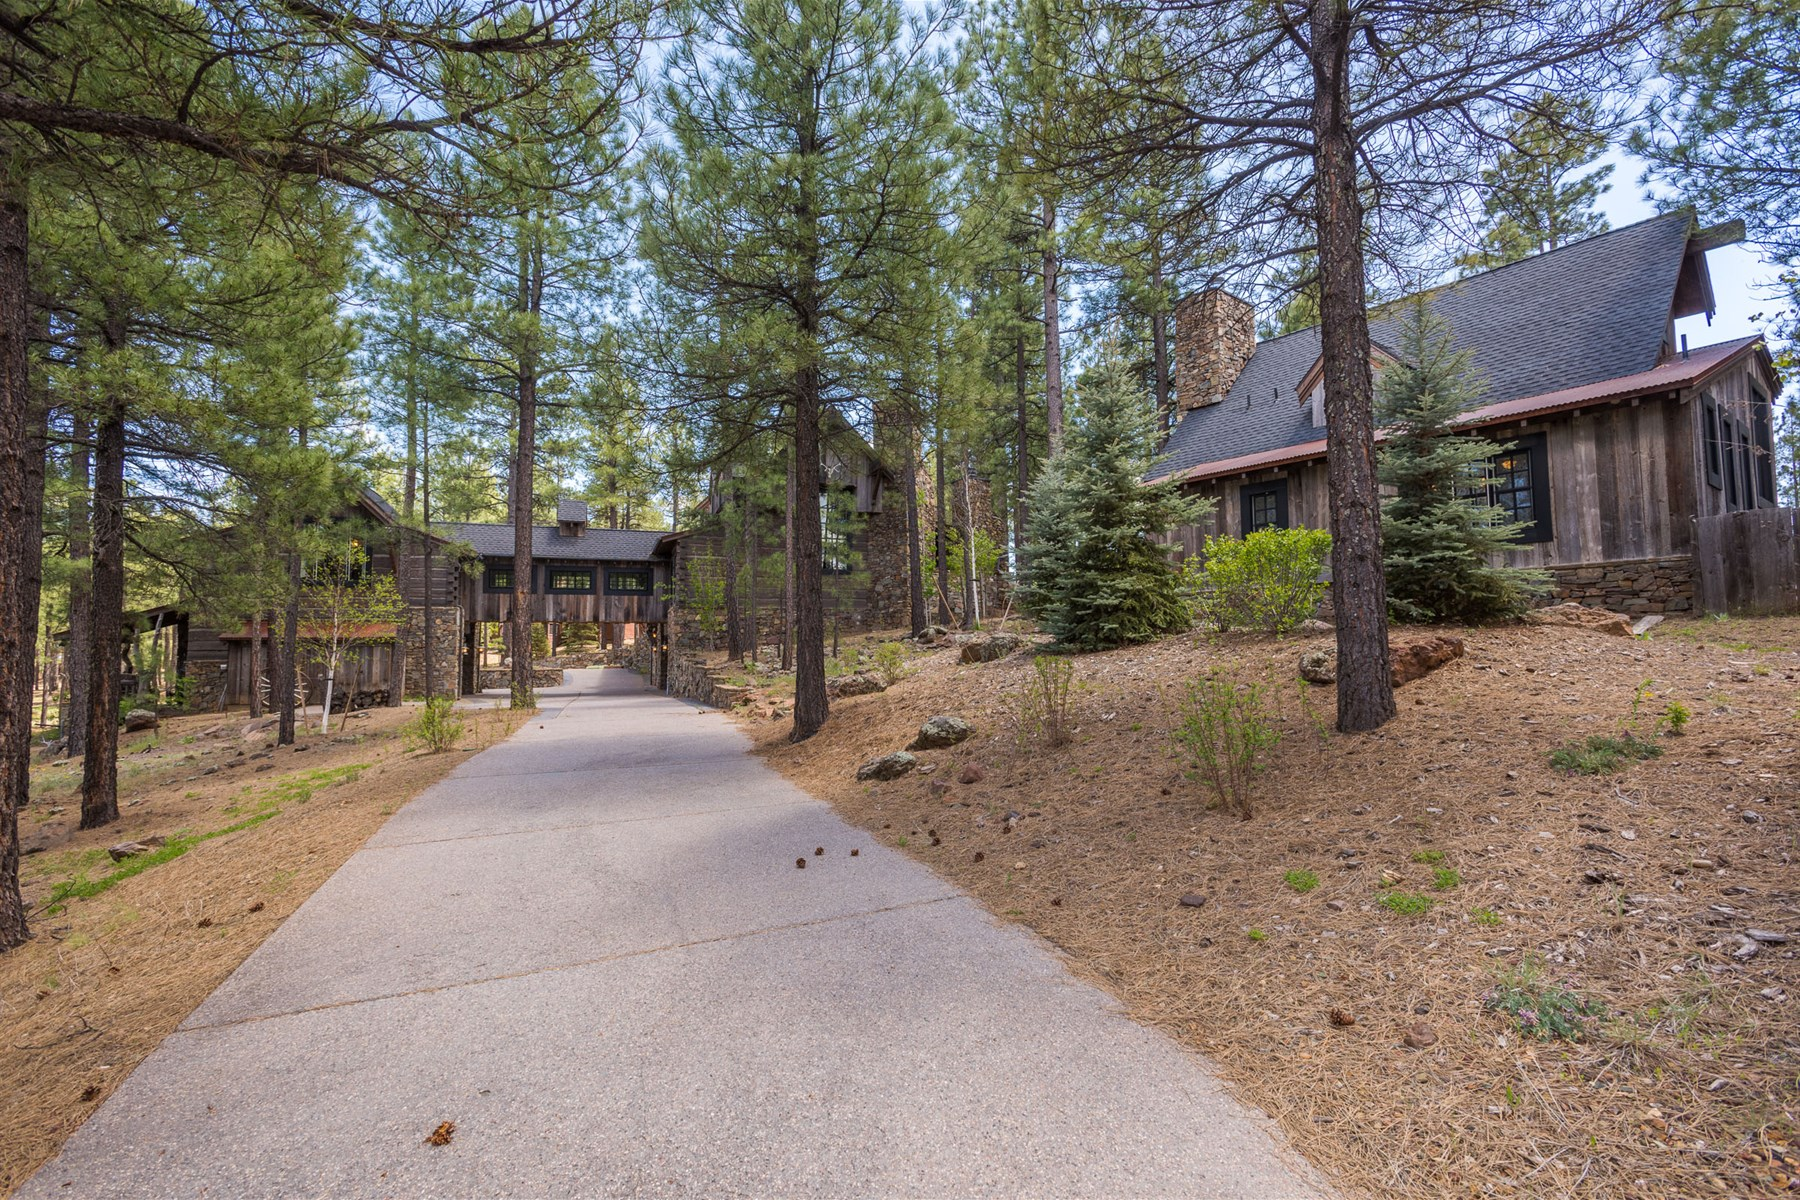 Single Family Home for Sale at By architect Allen F.Tofoya this is a one of kind log masterpiece 1526 Andrew Douglass Flagstaff, Arizona 86005 United States